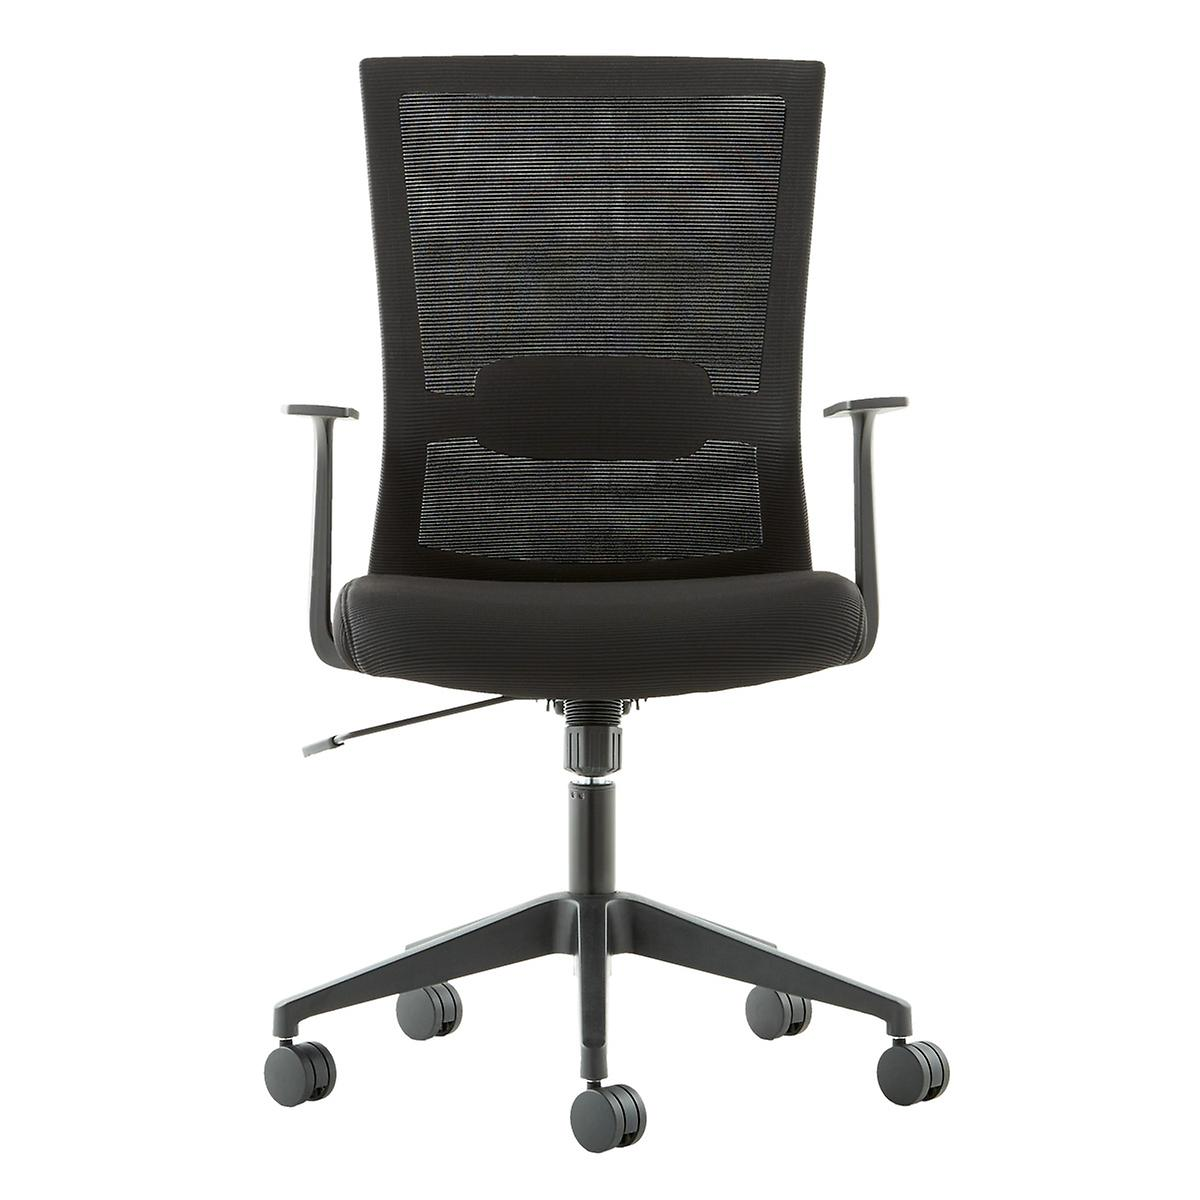 Black mesh office chair the container store